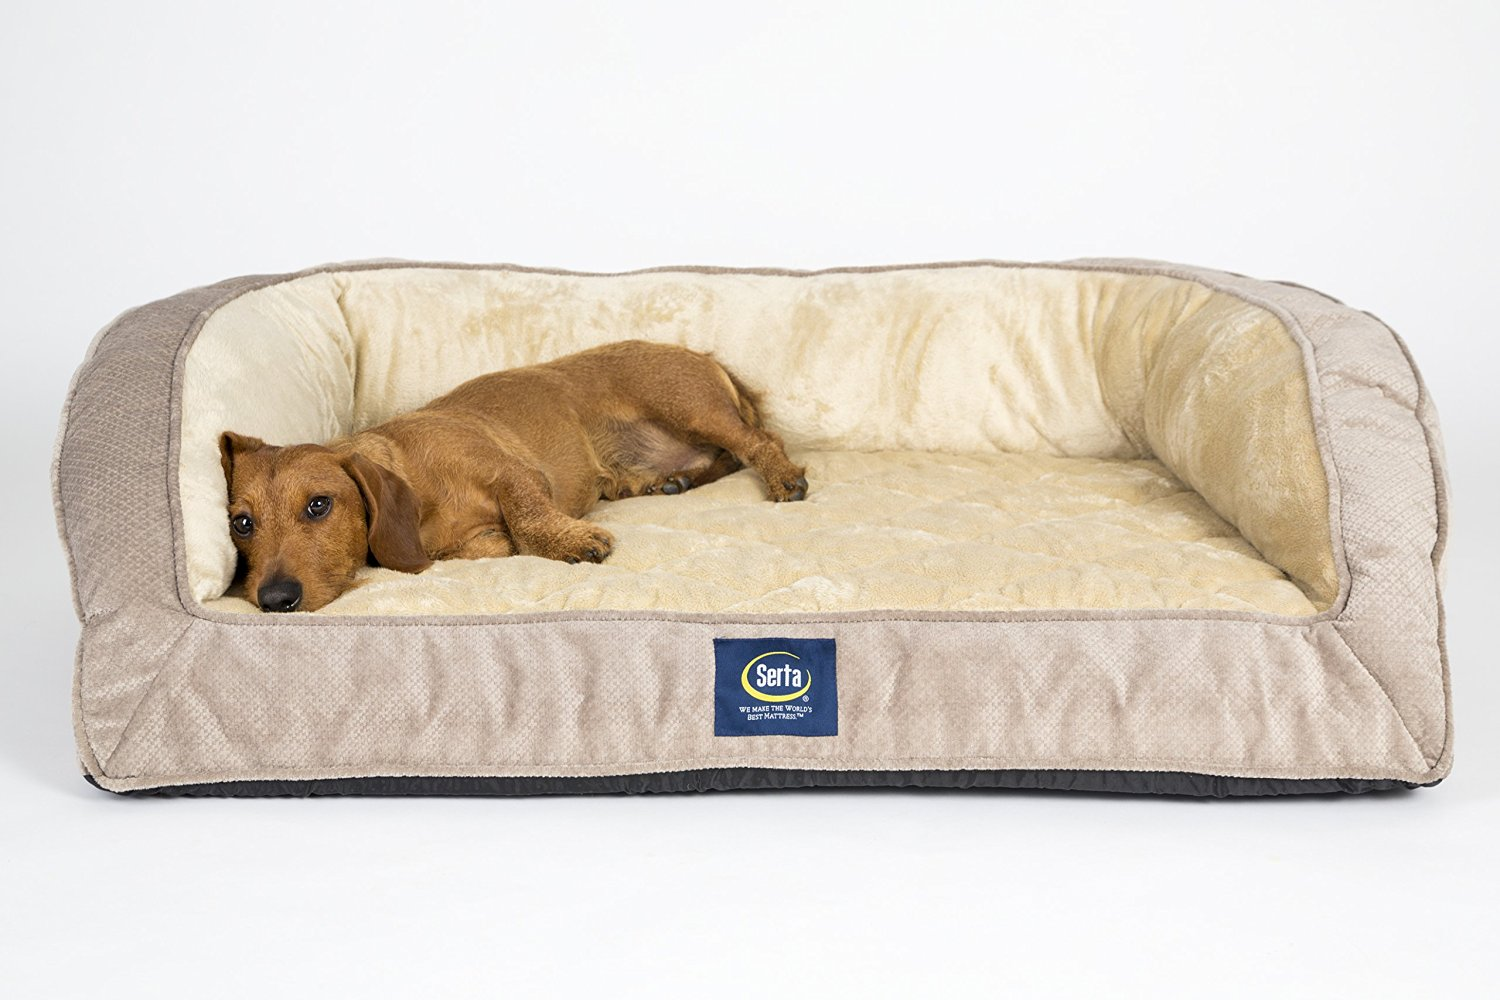 sofa dog bed skymall sofas sectional lounger options all pet cages